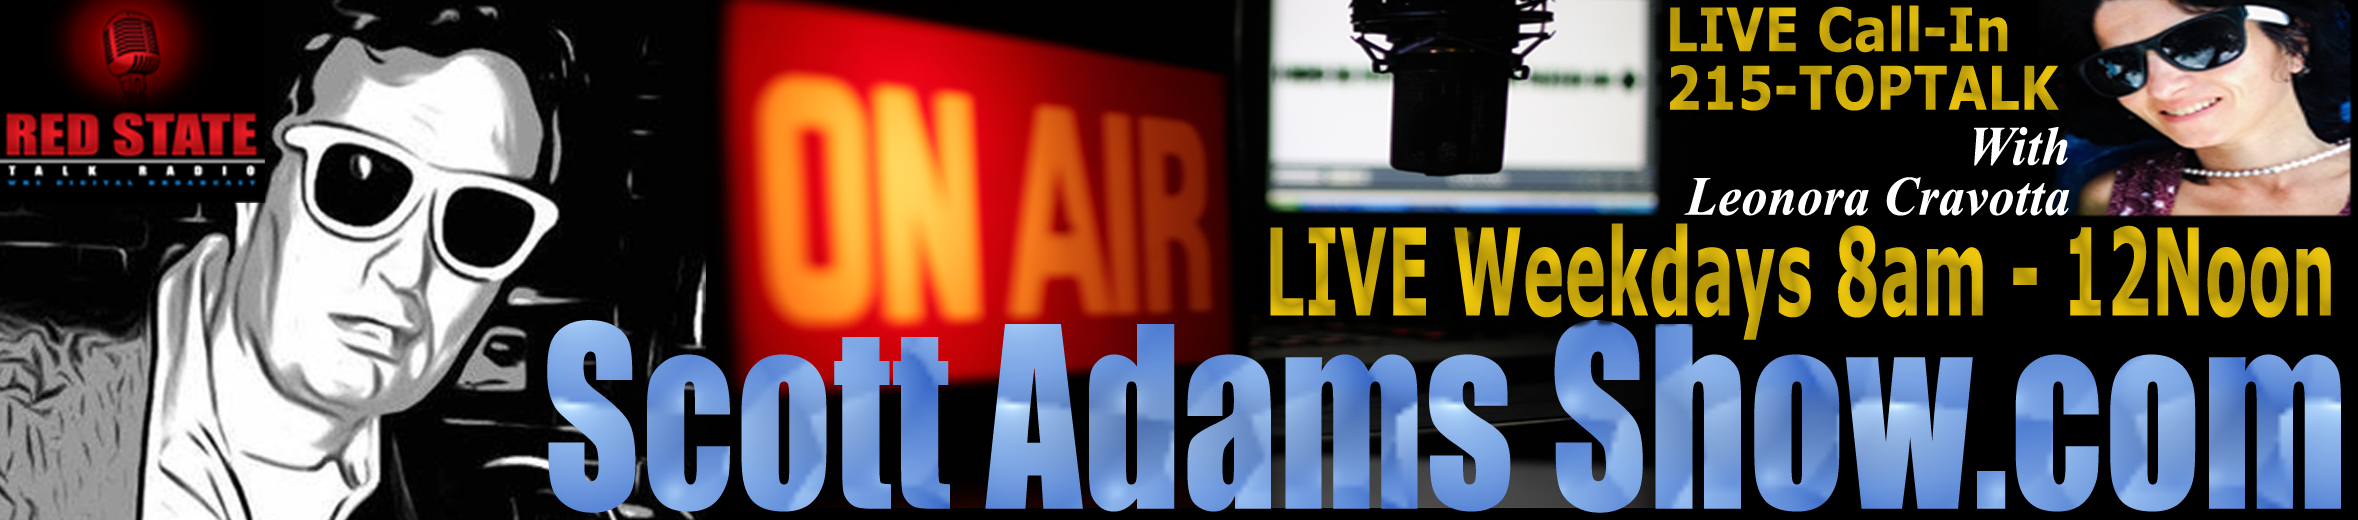 8a-12p EST LIVE Weekdays